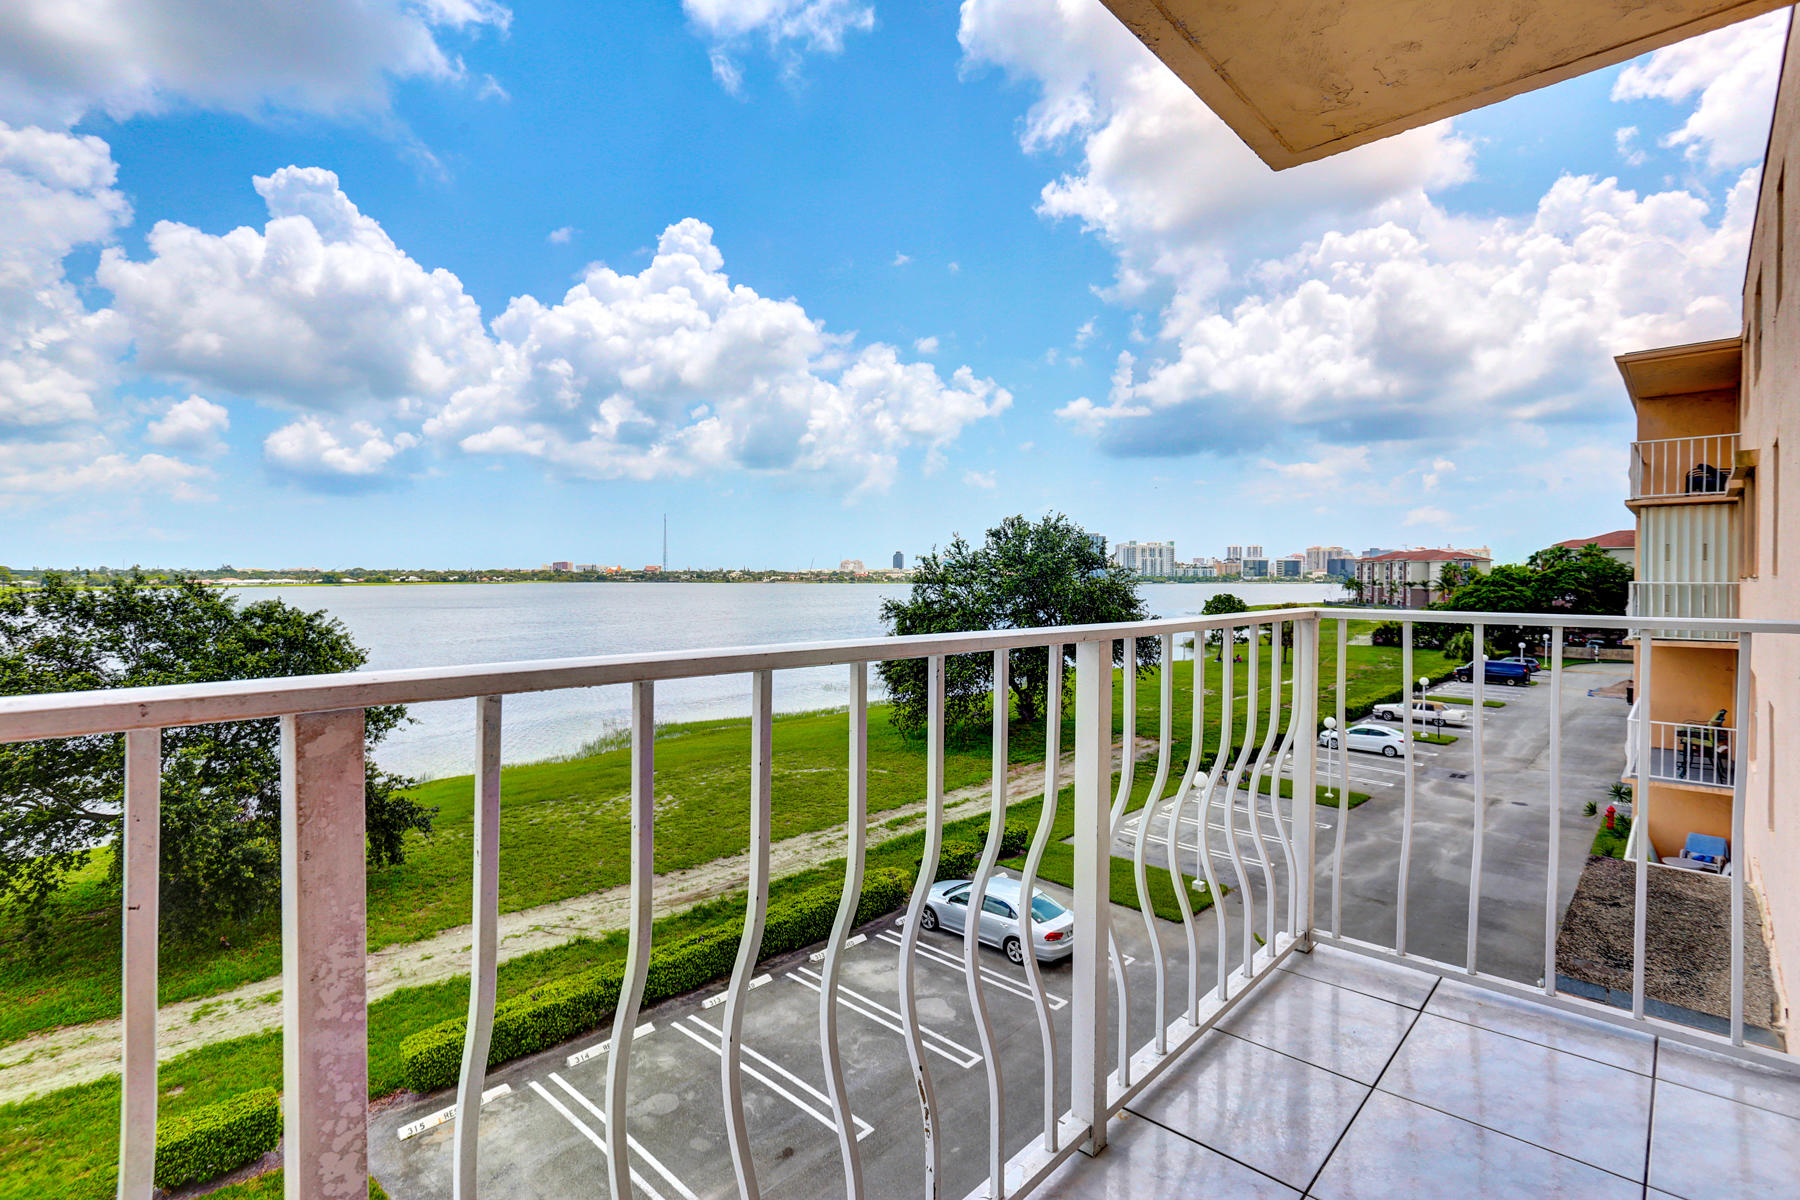 470 Executive Center Drive, West Palm Beach, Florida 33401, 1 Bedroom Bedrooms, ,1 BathroomBathrooms,Condo/Coop,For Sale,Breakwaters of The Palm Beaches,Executive Center,4,RX-10439274